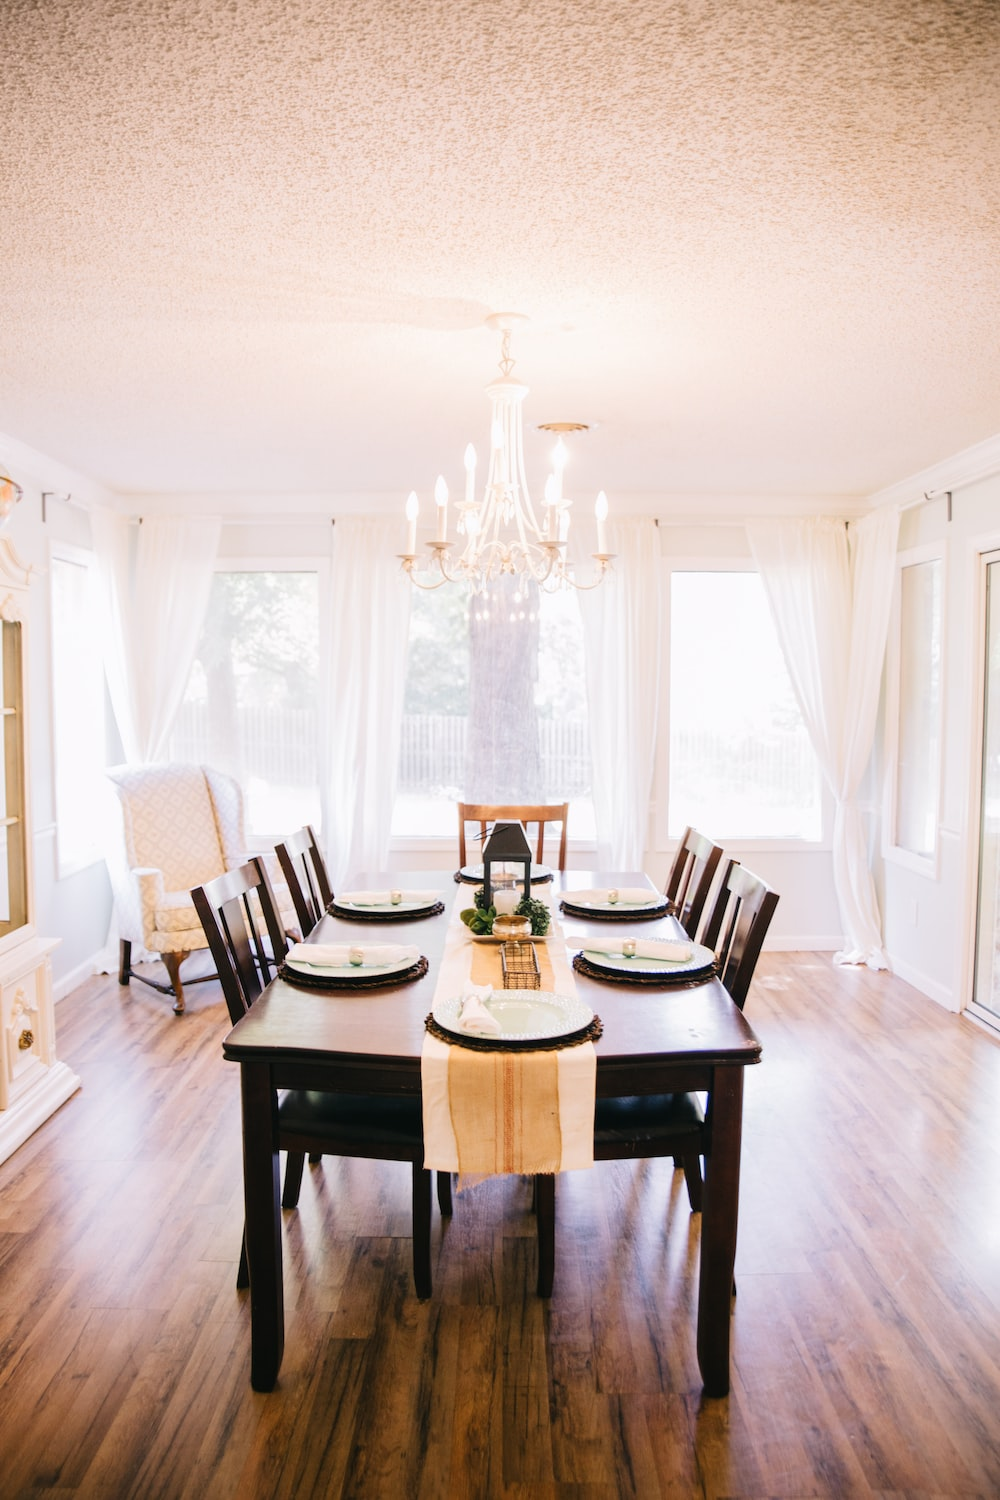 47+ Catchy Dining Room Attendant To Get Inspired